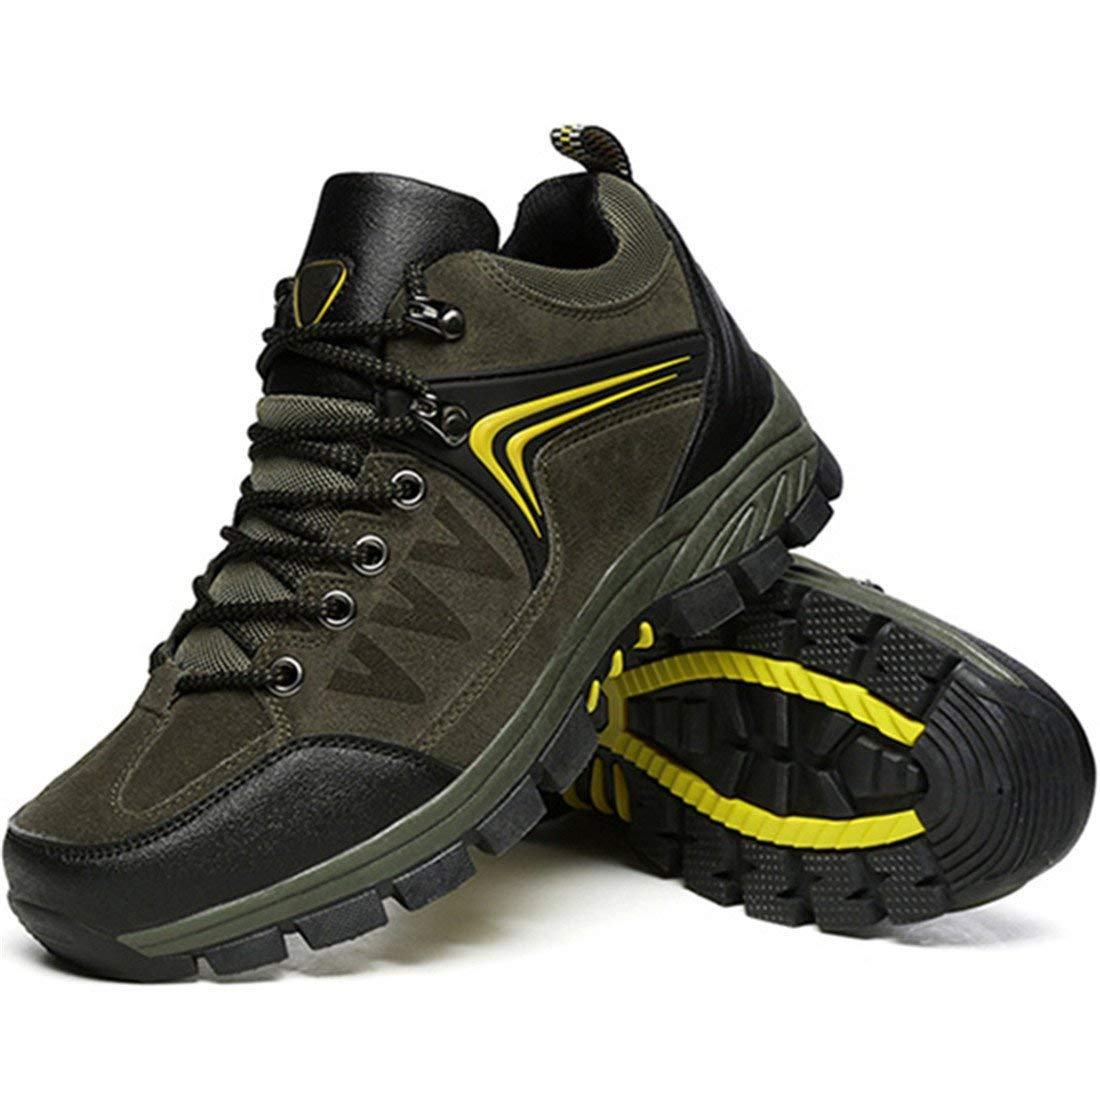 Mens Hiker Shoes Winter Waterproof Hiking Boot for Outdoor Mountaineering